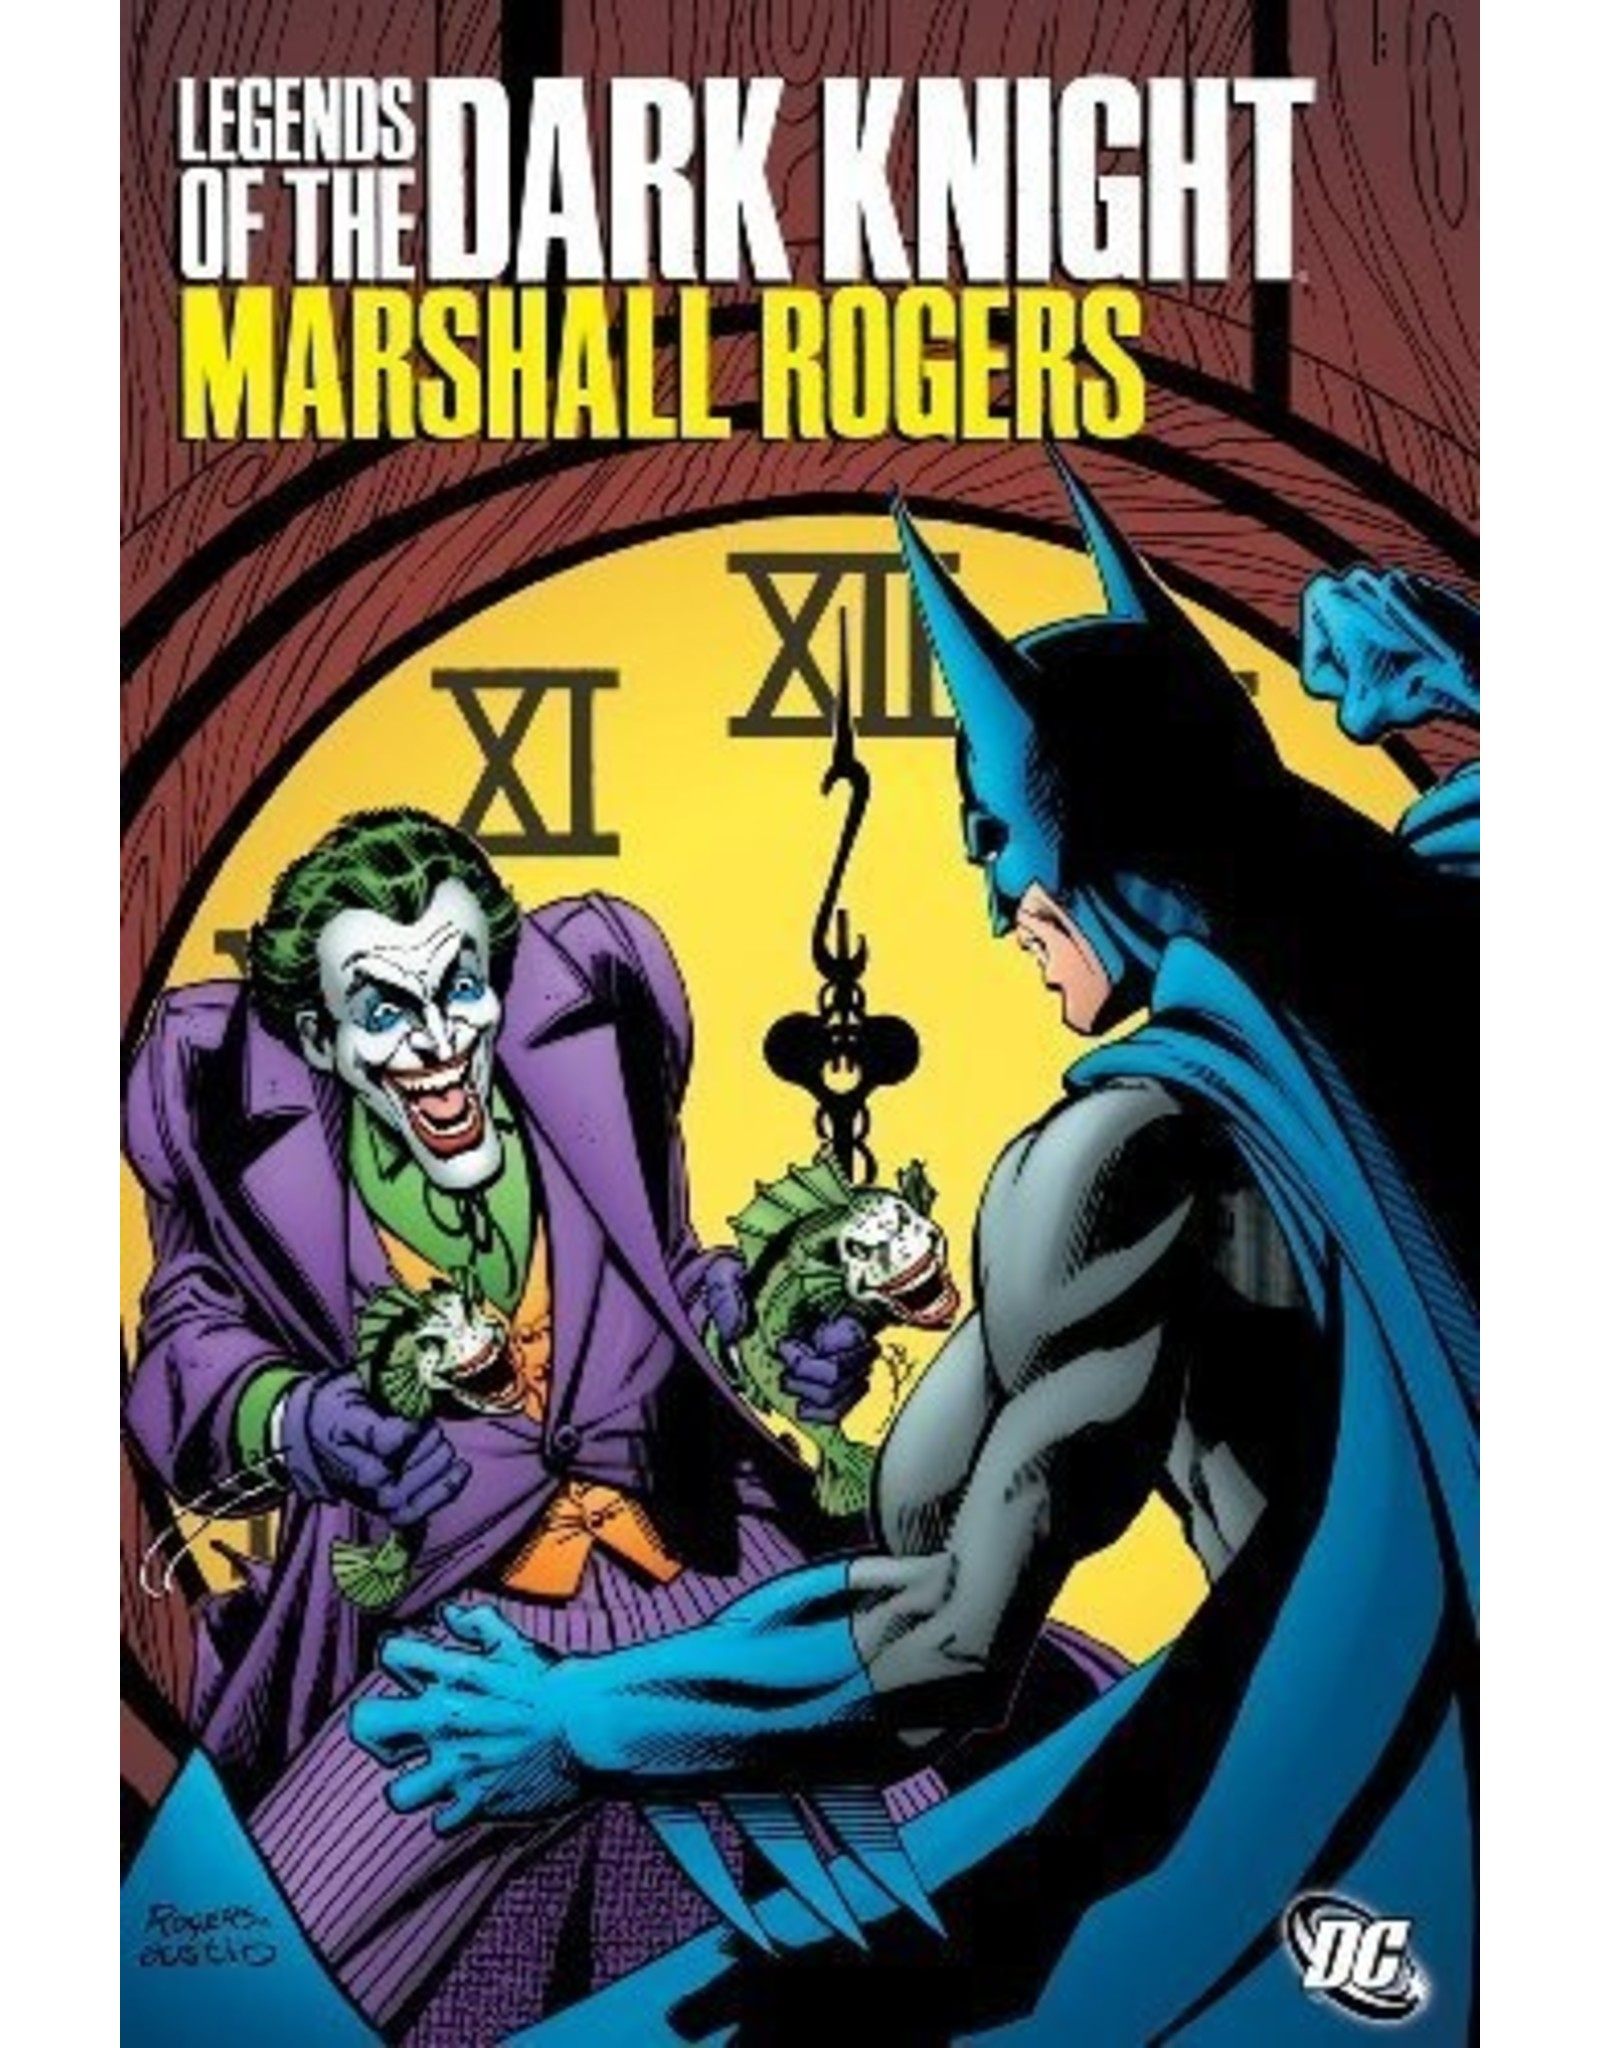 DC COMICS LEGENDS OF THE DARK KNIGHT MARSHALL ROGERS HC (OOP SEALED)